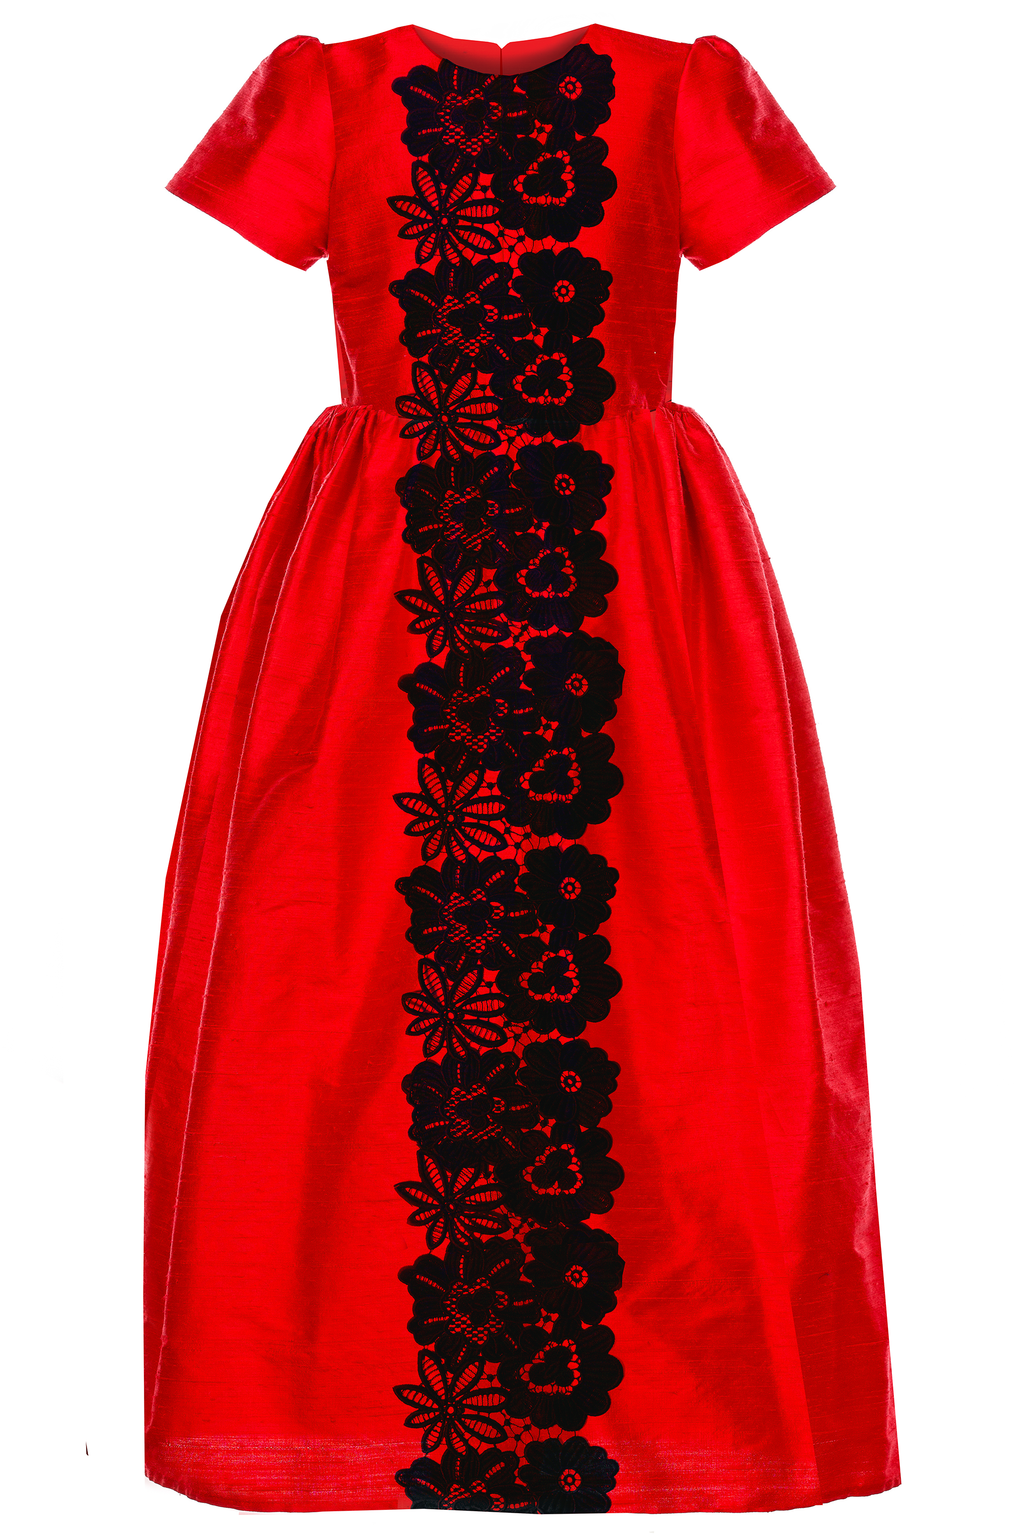 Lacey Maxi Girls Dress in Taffeta Red and Black Lace - LAZY FRANCIS - Shop in store at 406 Kings Road, Chelsea, London or shop online at www.lazyfrancis.com